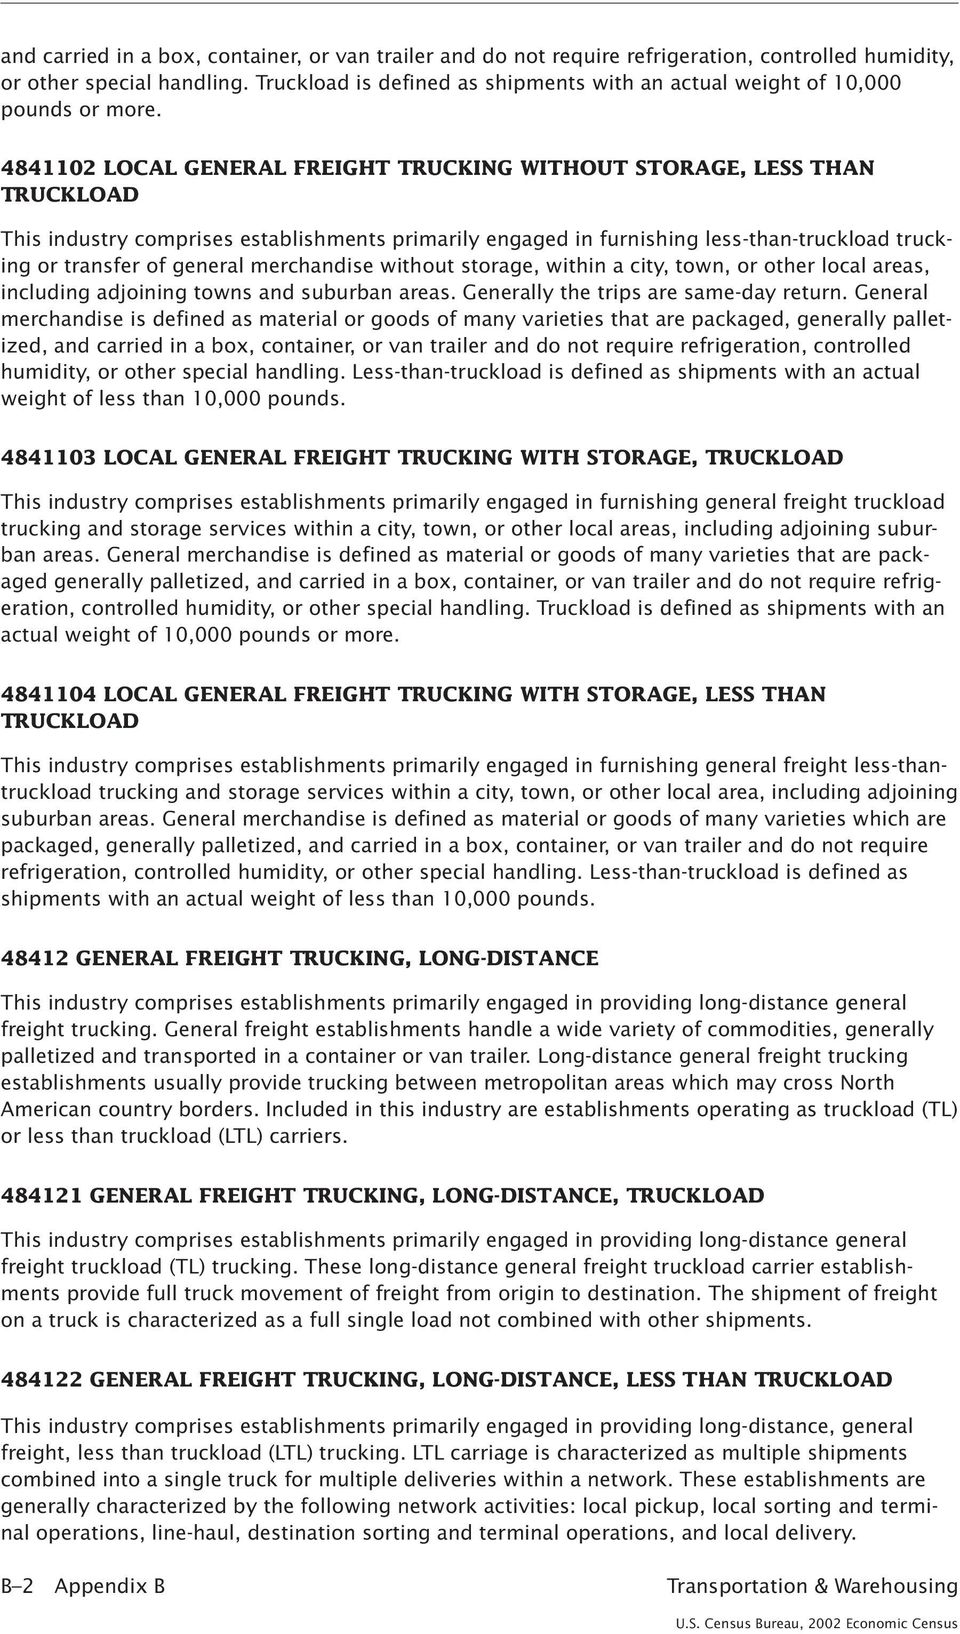 4841102 LOCAL GENERAL FREIGHT TRUCKING WITHOUT STORAGE, LESS THAN TRUCKLOAD This industry comprises establishments primarily engaged in furnishing less-than-truckload trucking or transfer of general